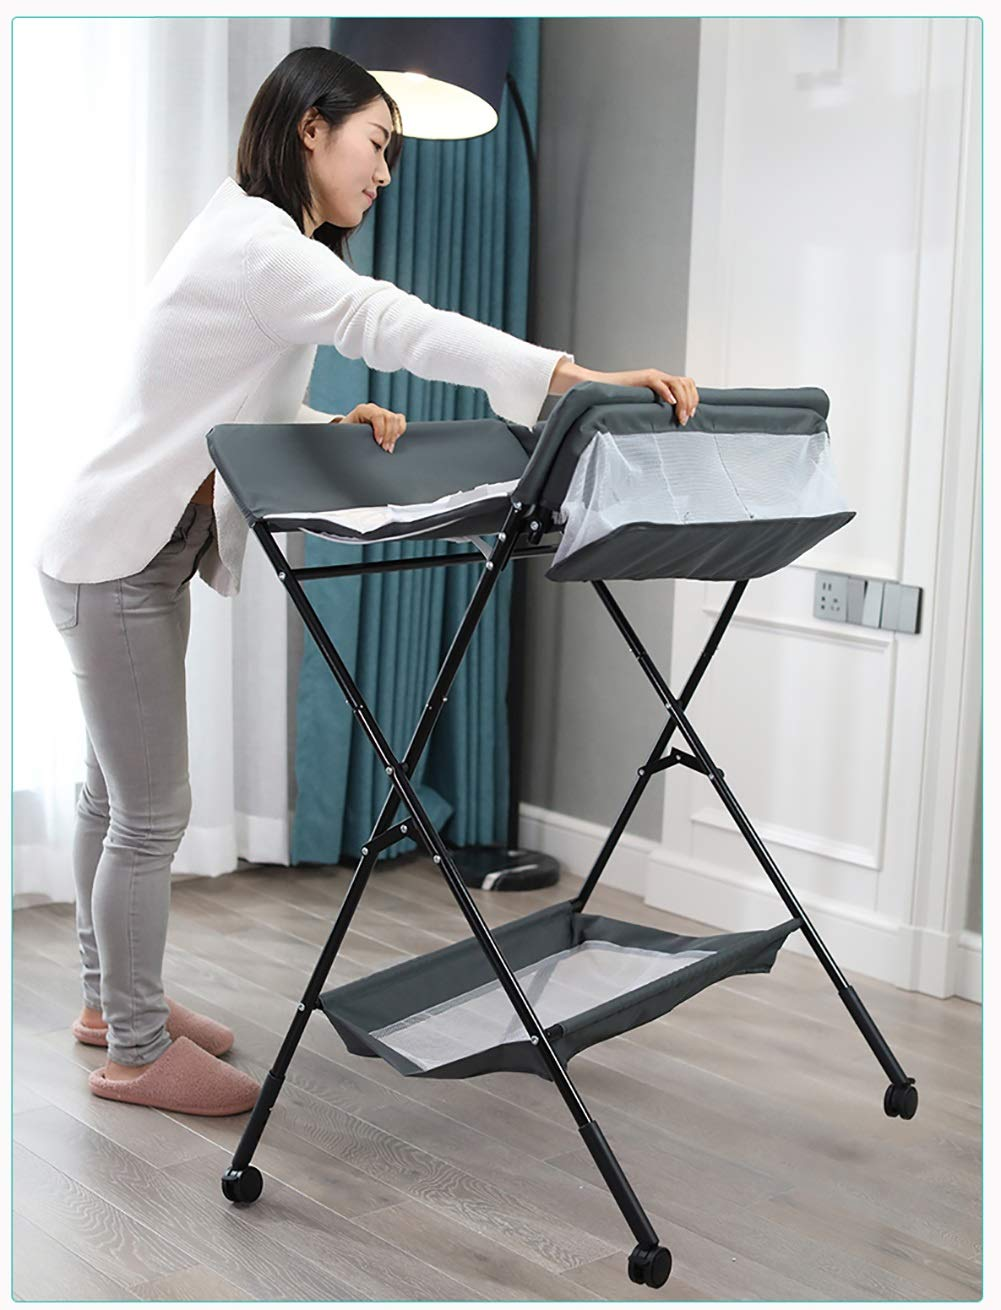 QZ® Changing Table with Wheels - Nursery Restroom Toddler Newborn Baby Foldable Adjustable Diaper Station with Storage, Gray/Green (color : Blue)